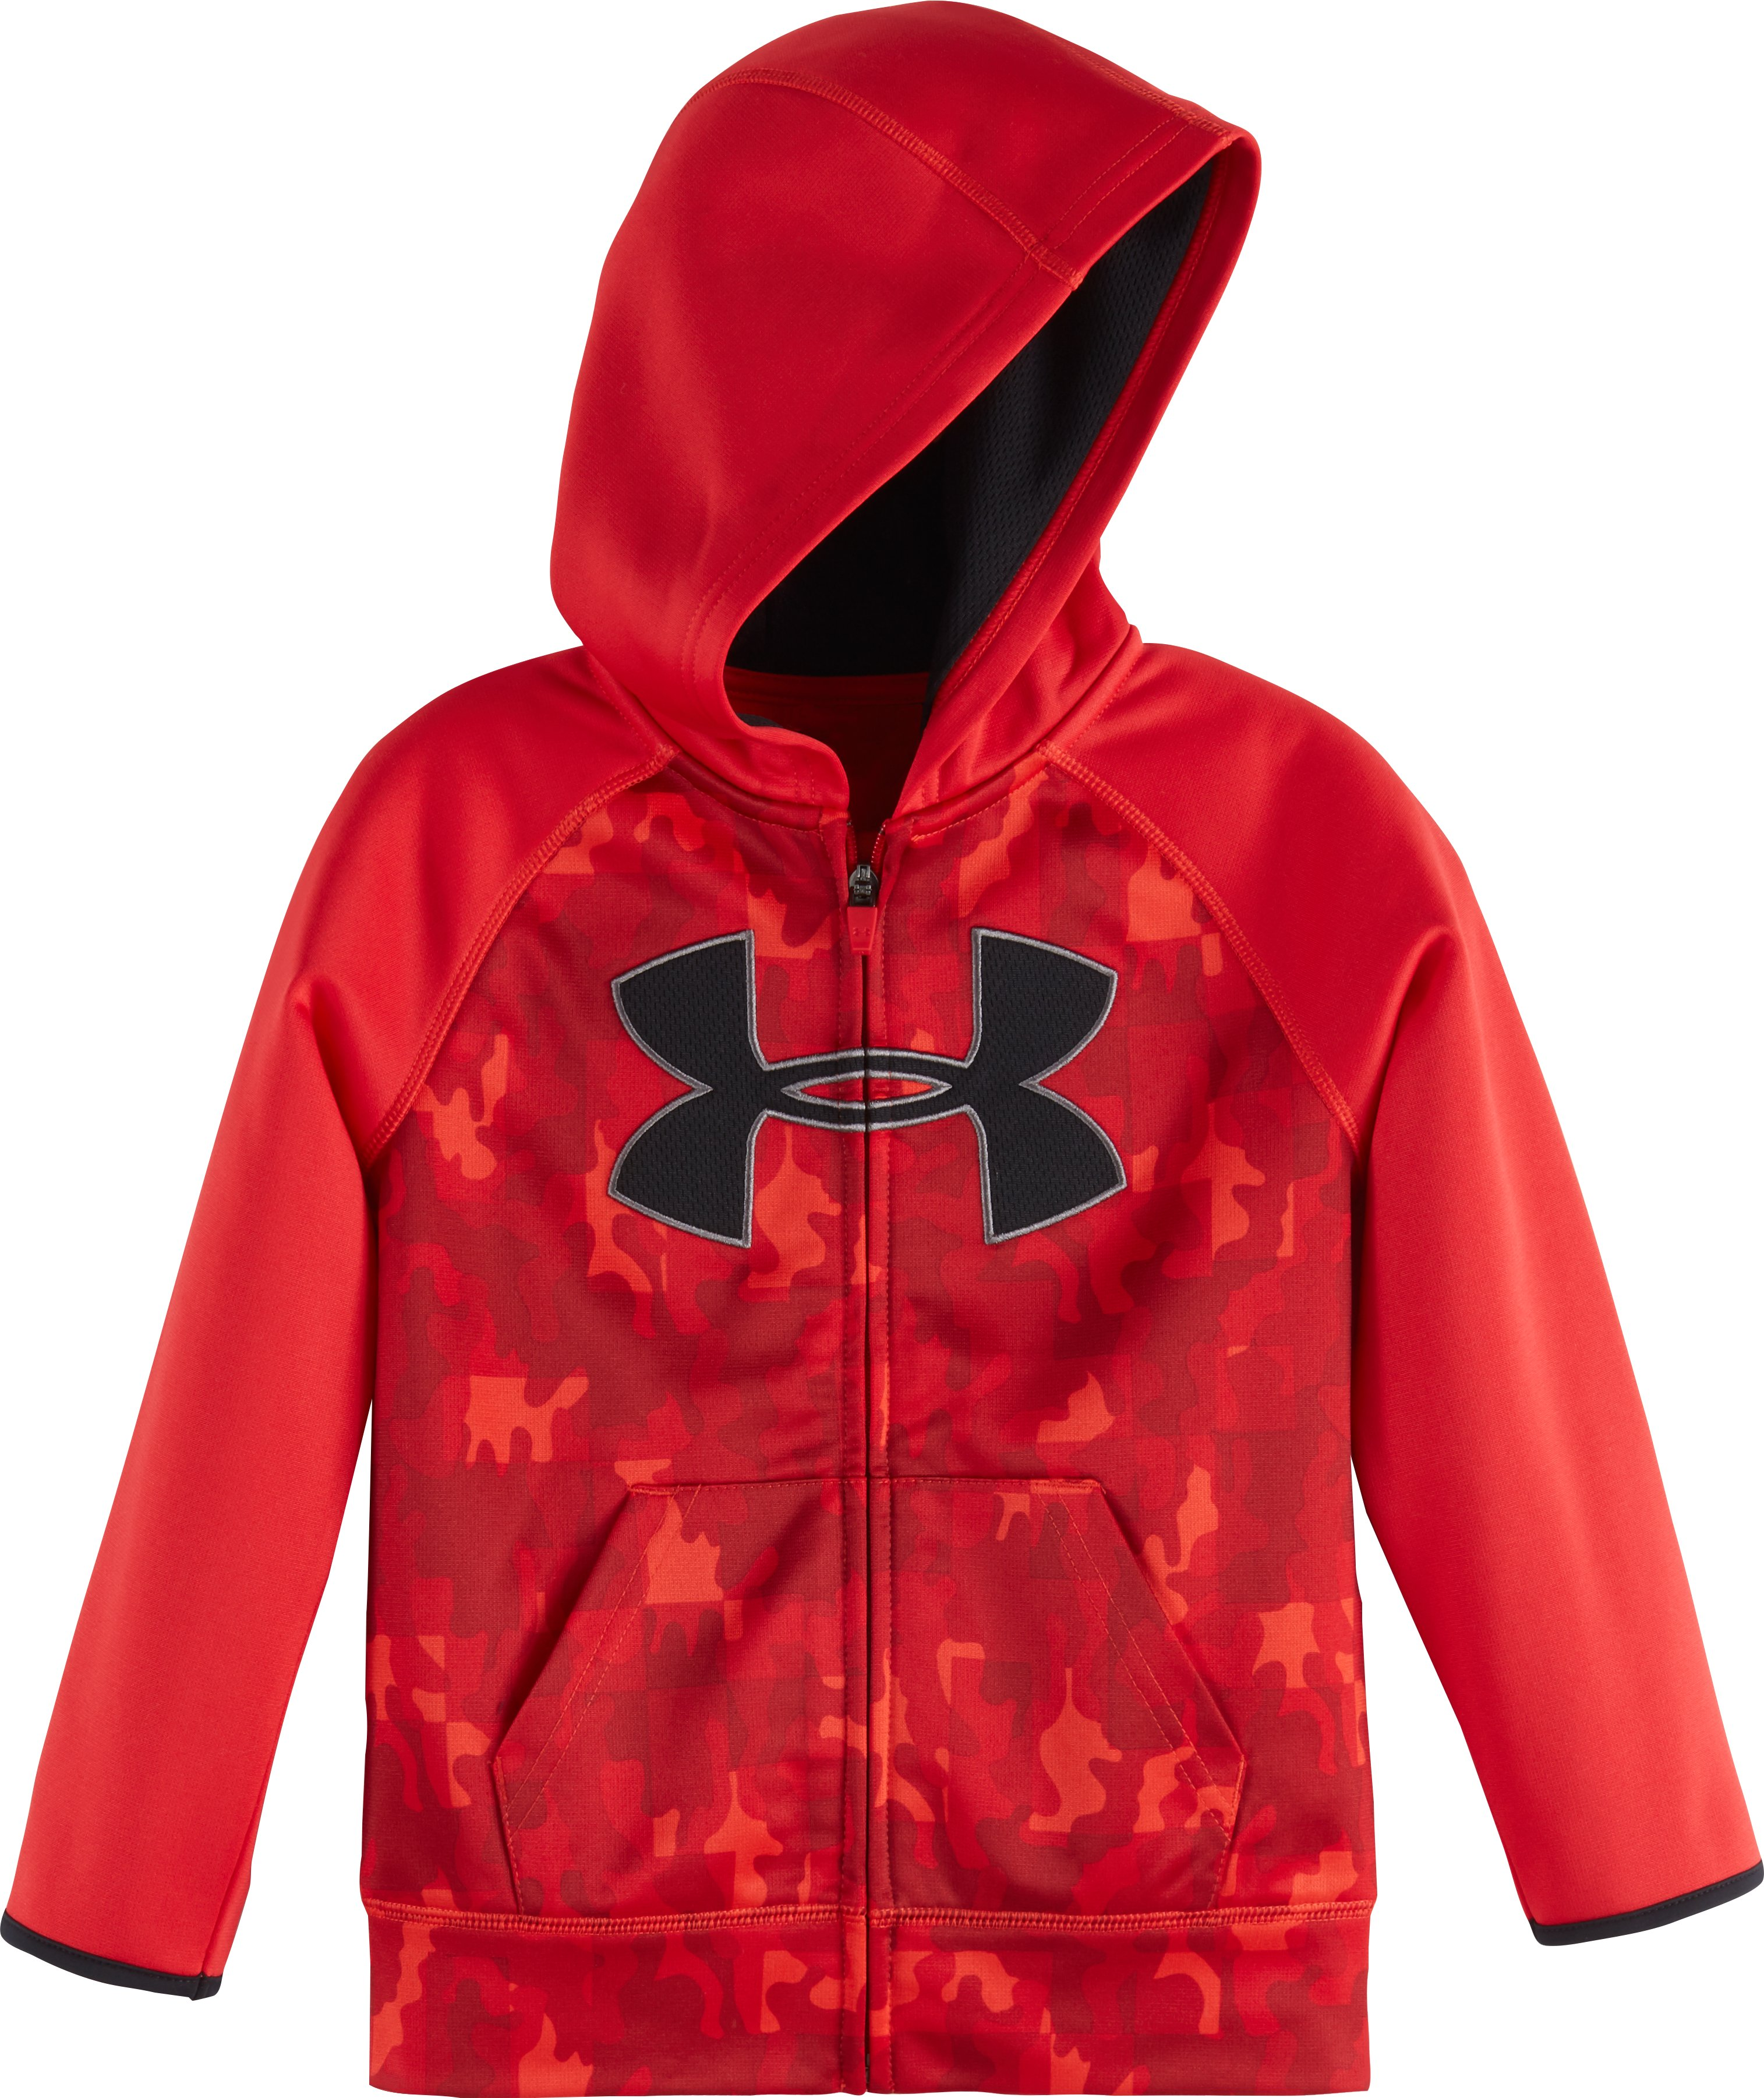 Boys' Pre-School UA Atlas Big Logo Hoodie, Red